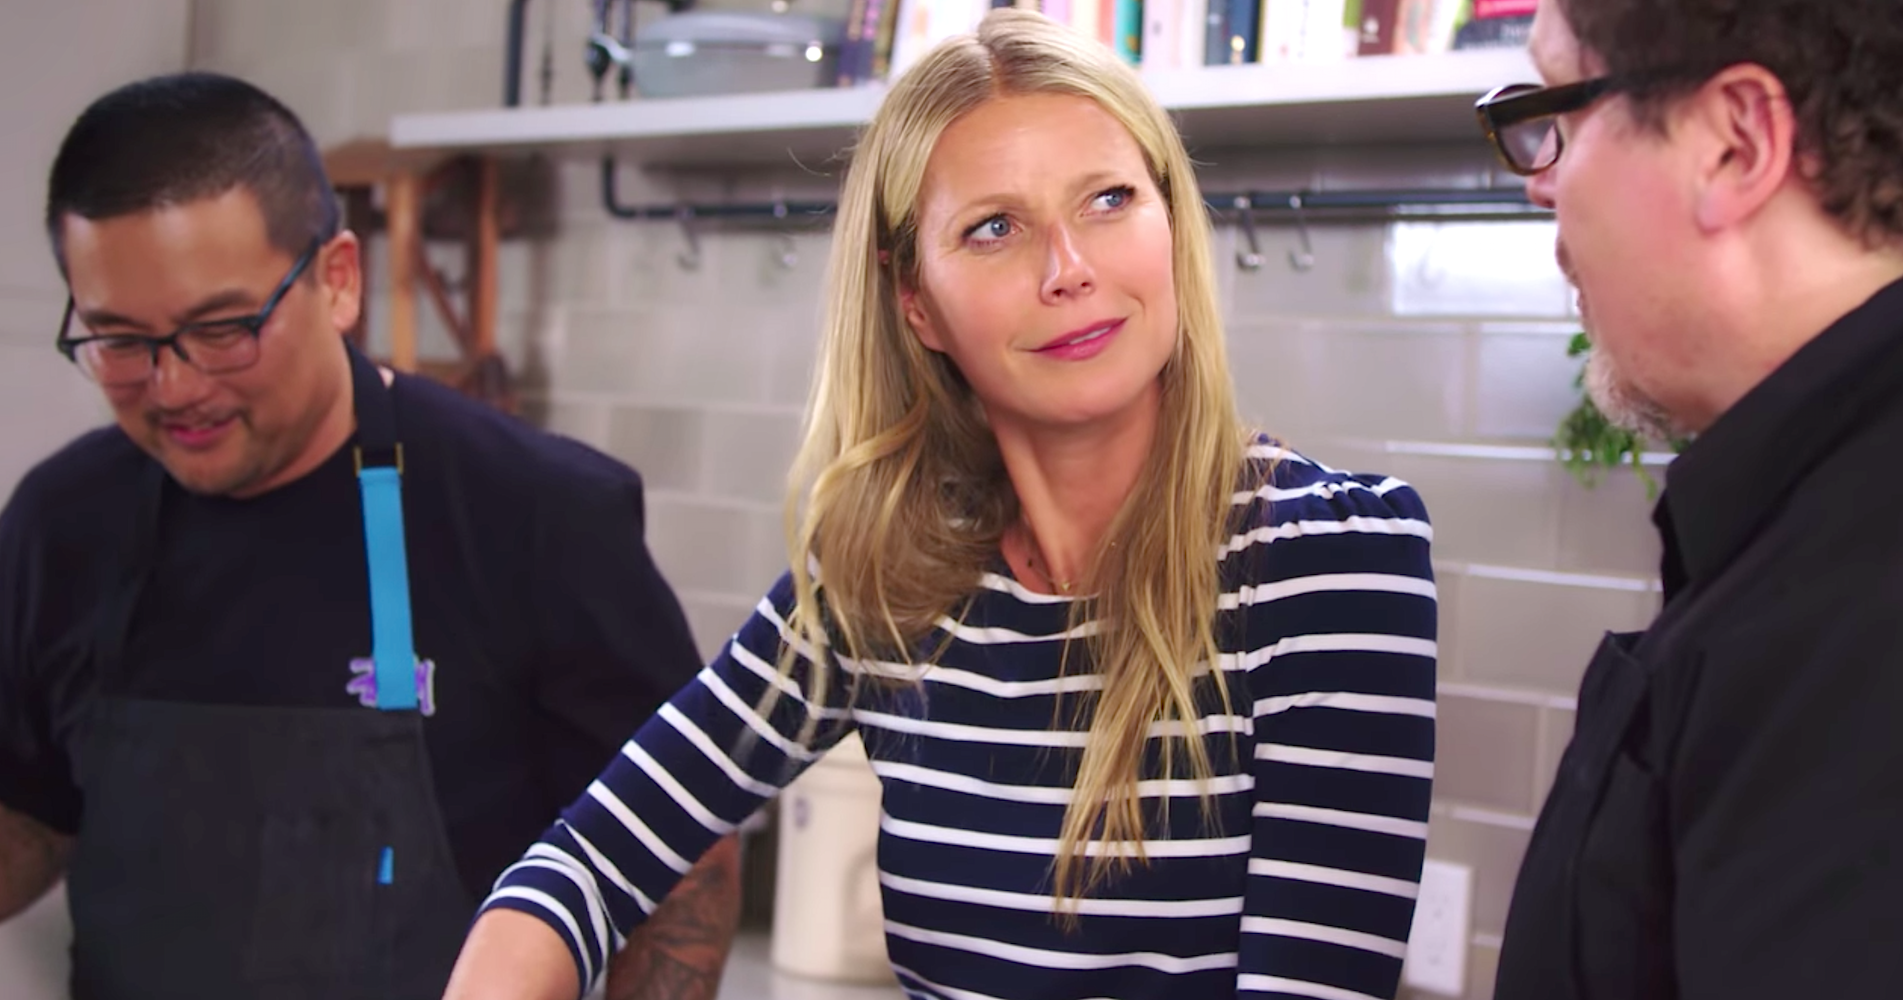 Watch Gwyneth Paltrow Discover She Starred in Spider-Man: Homecoming While Zesting an Orange